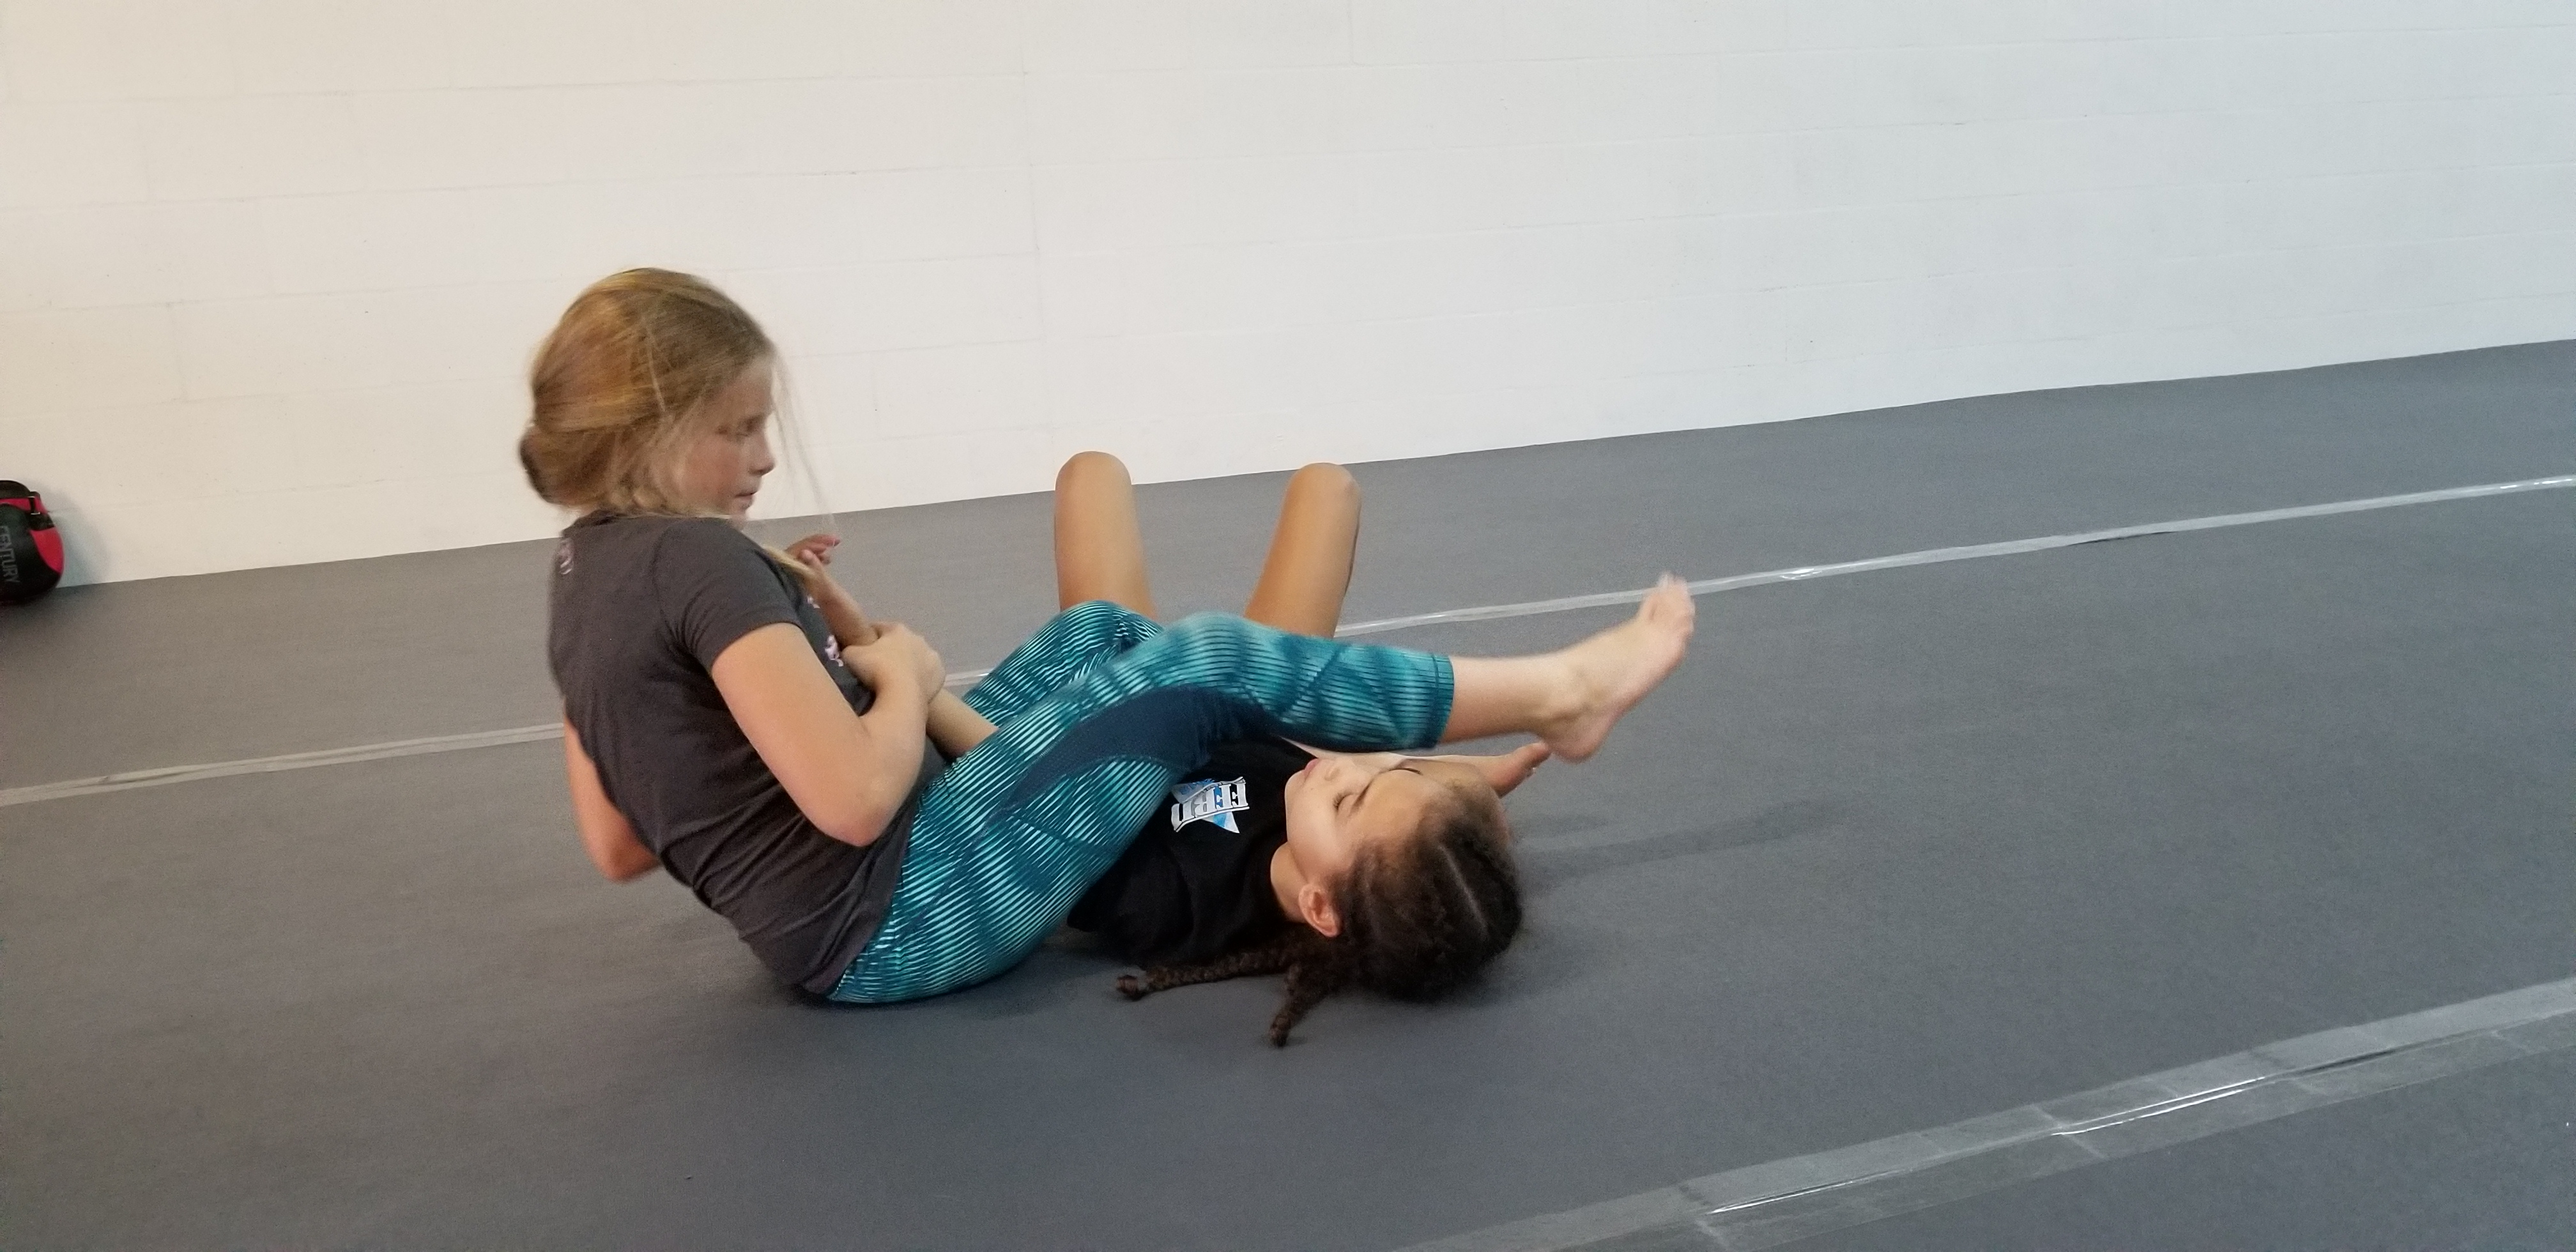 bjj technical drills